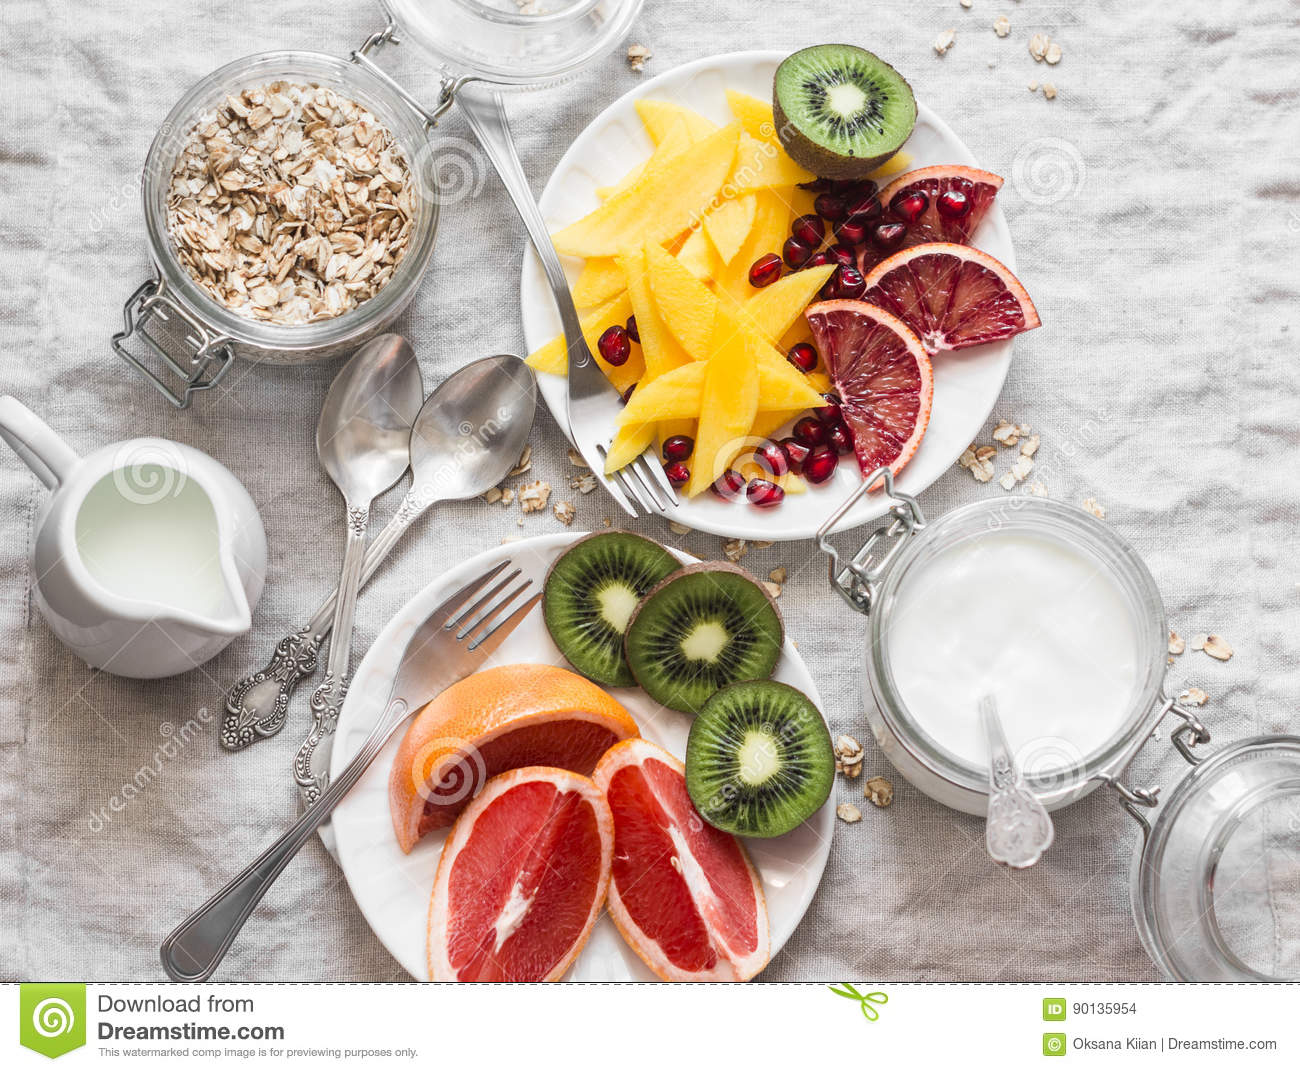 Breakfast table. Variety of fruits - mango, kiwi, grapefruit, orange and greek yogurt, oat flakes on a light background, top view.